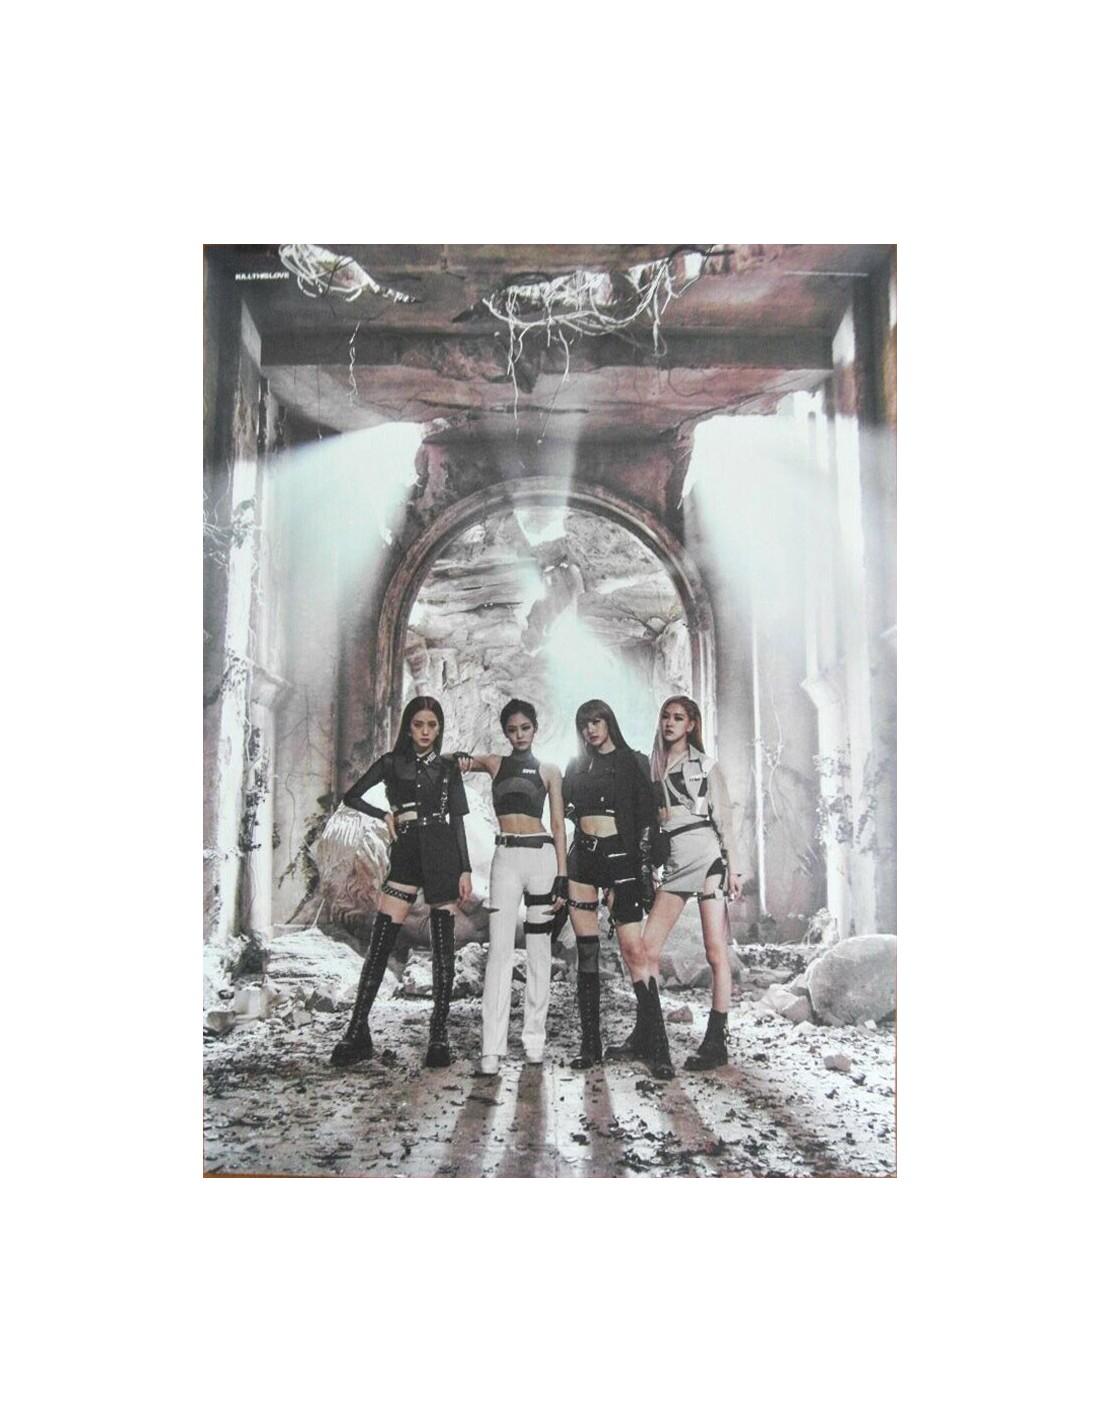 Poster] BLACKPINK 2nd Mini Album - KILL THIS LOVE Poster